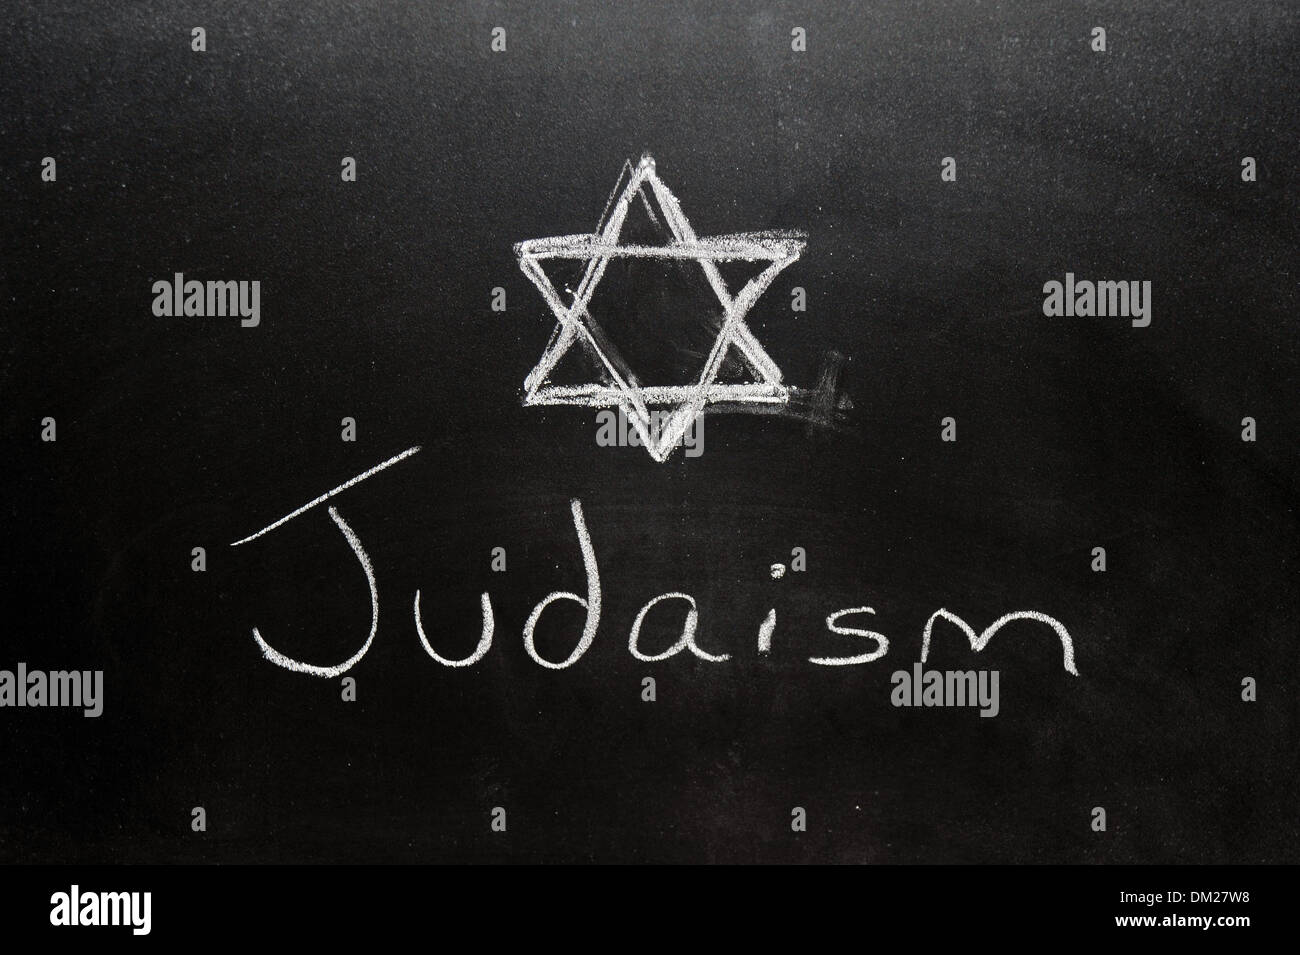 Close up of a blackboard with Judaism written on it in chalk. - Stock Image